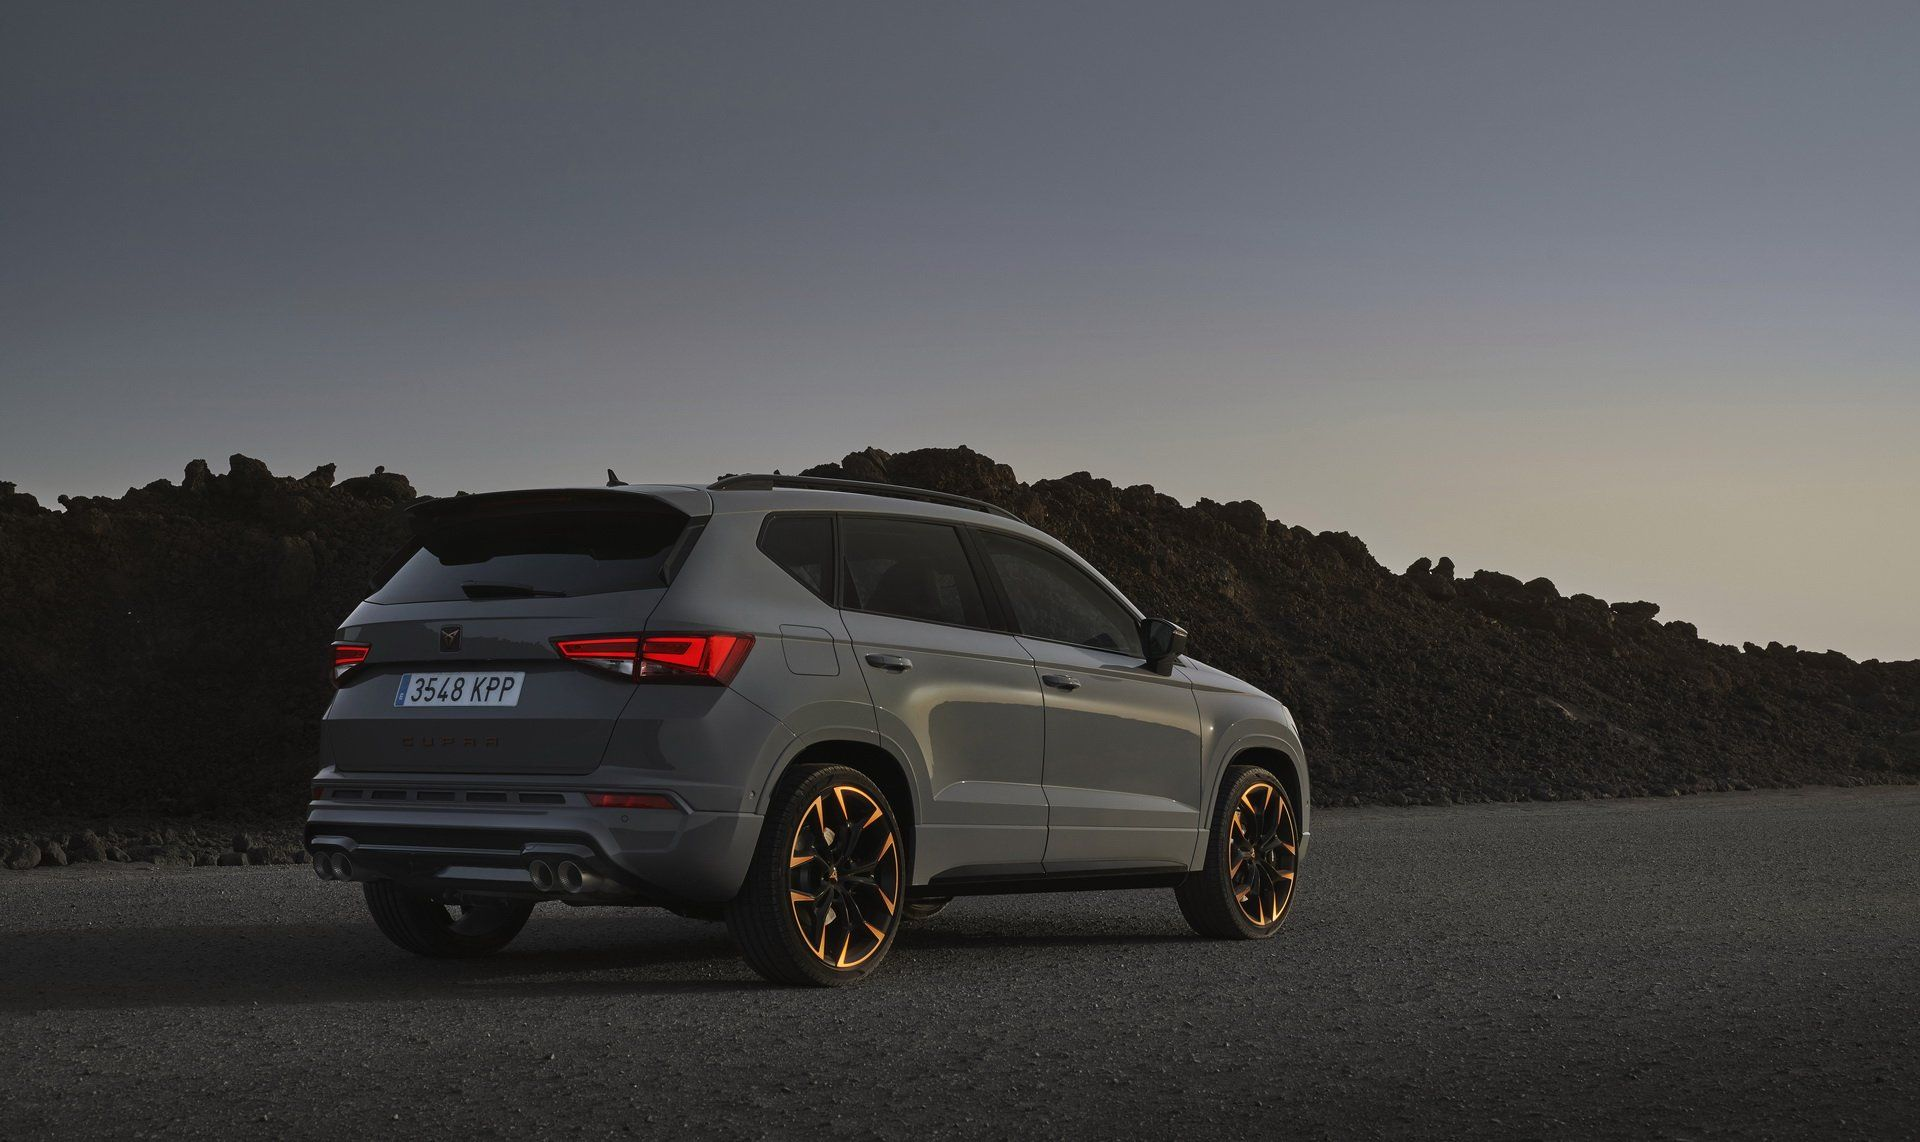 Cupra-Ateca-Limited-Edition-19